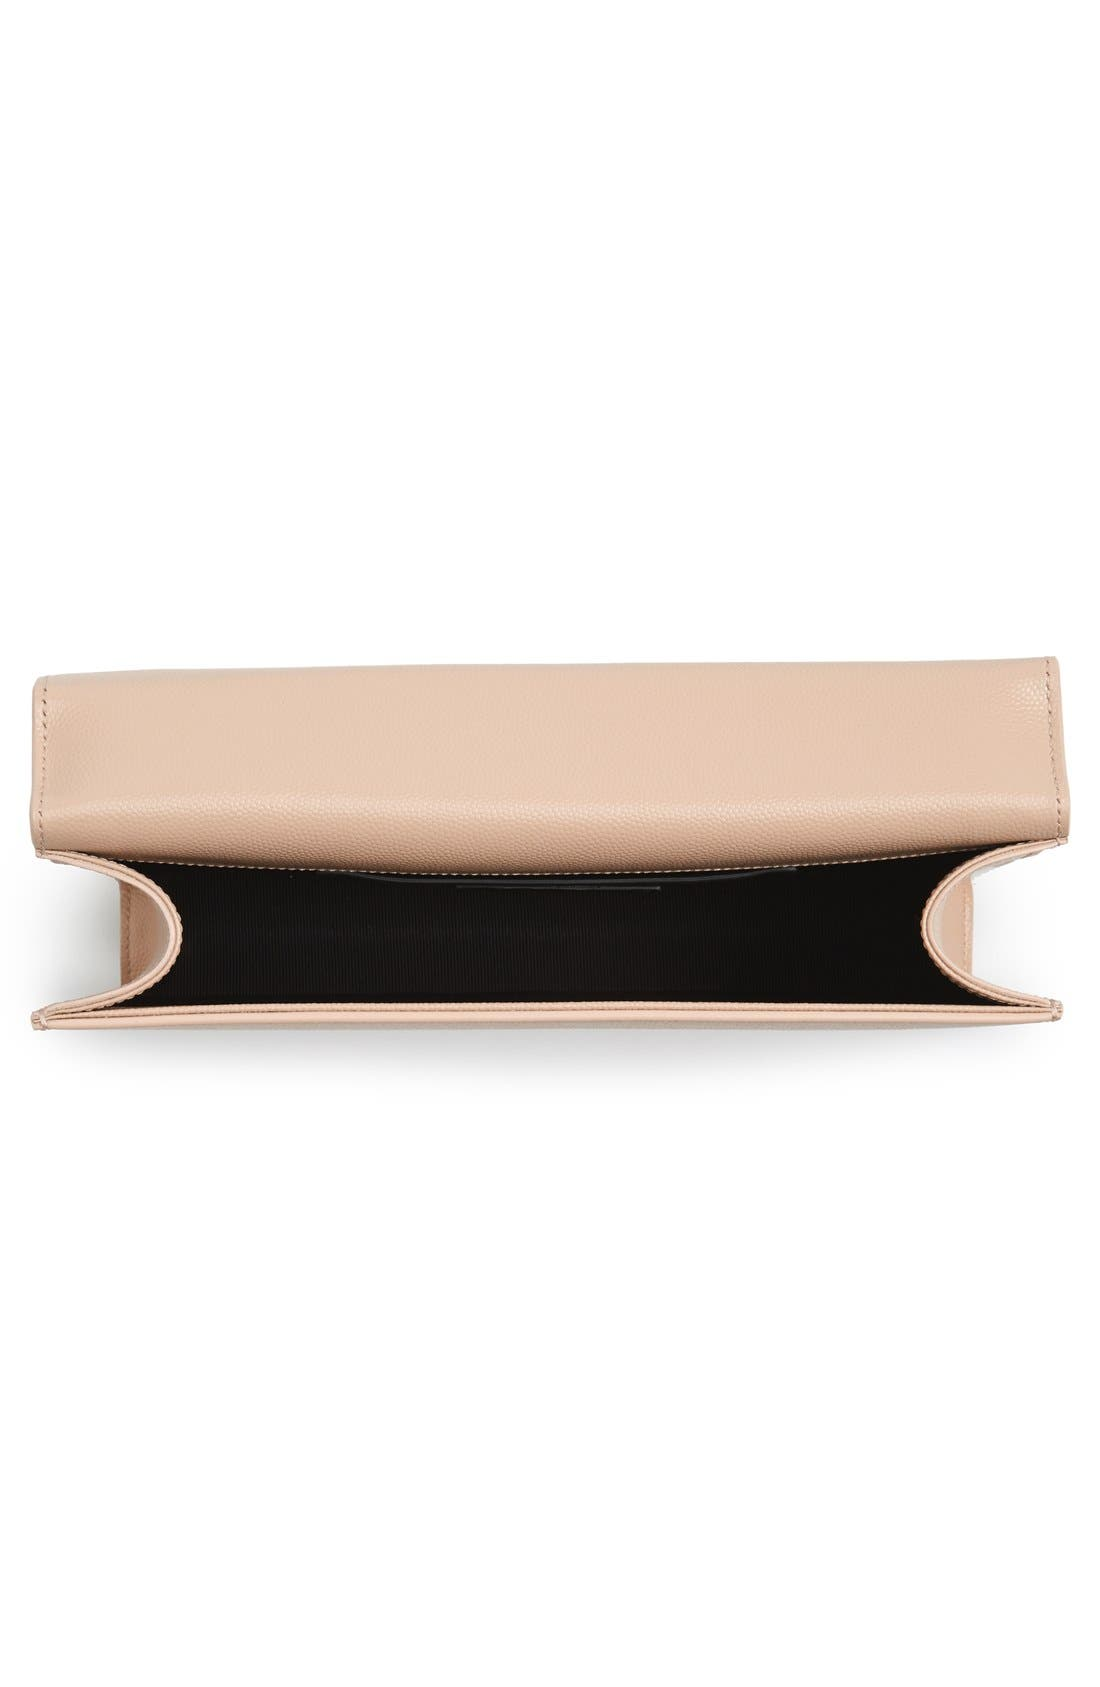 Alternate Image 4  - Saint Laurent 'Monogram' Leather Clutch